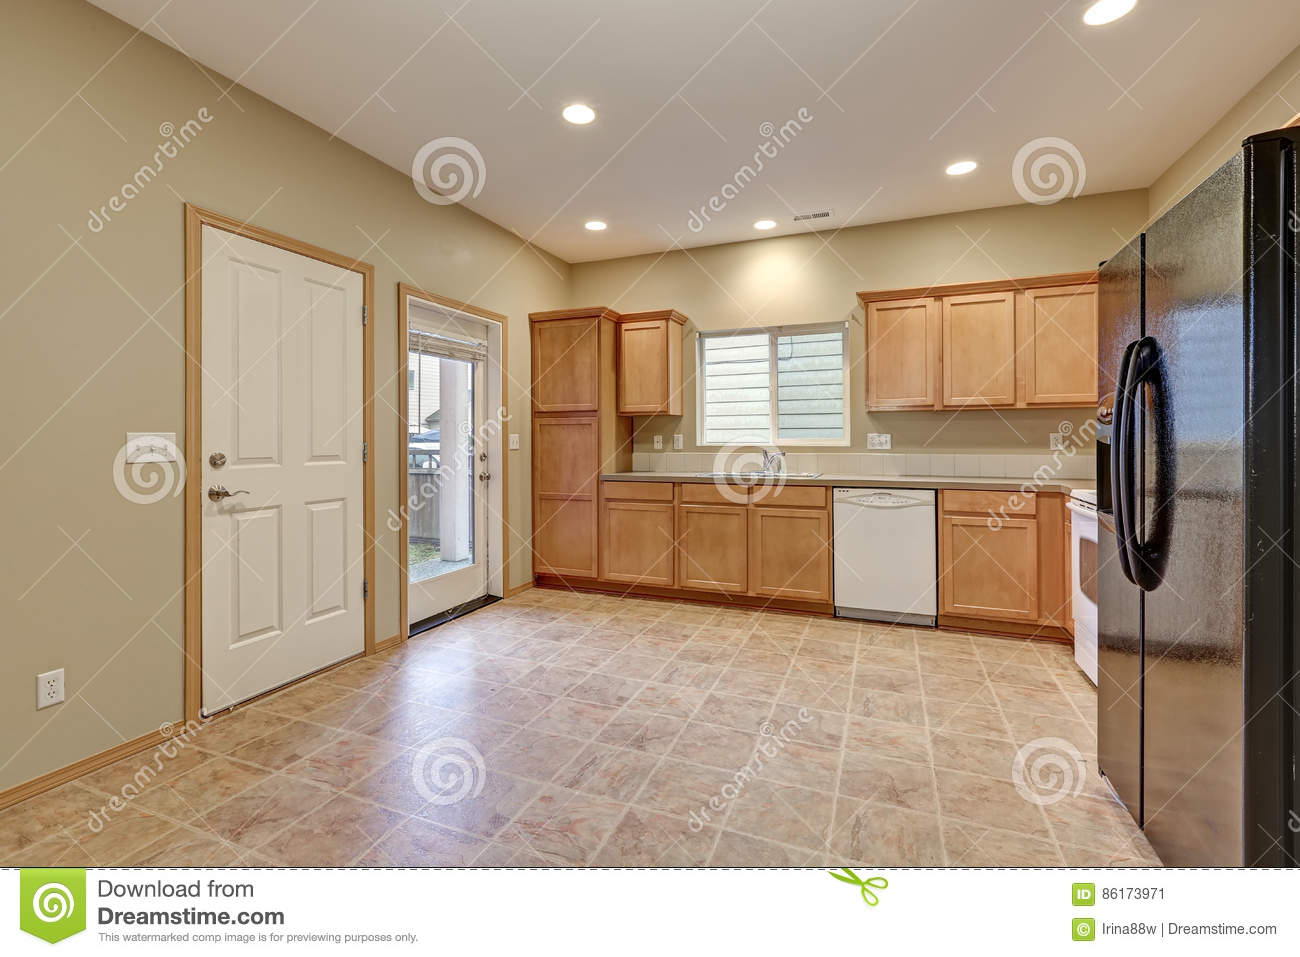 Light And Airy Kitchen Room With Beige Walls Stock Image Image Of